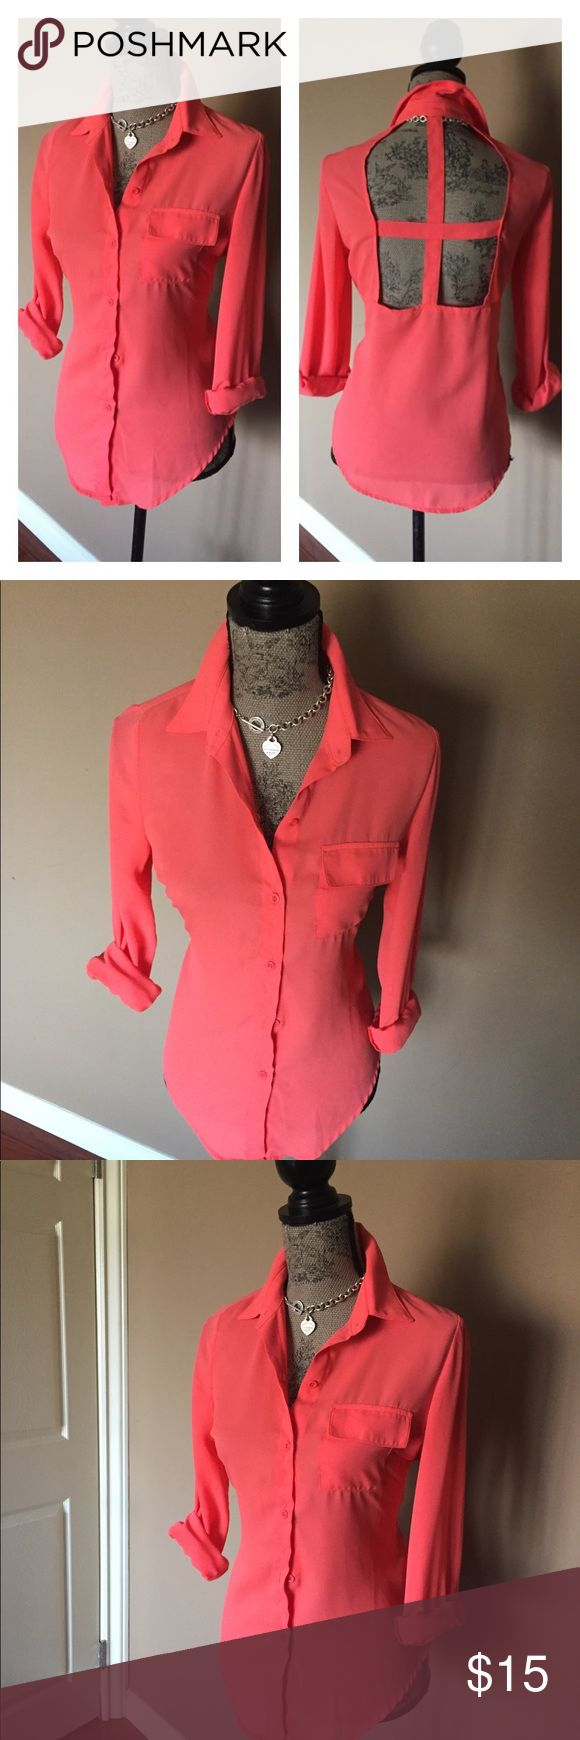 "Coral Shirt In excellent condition. No stains, tears or defects. 100% polyester. This shirt Looks great with skinny jeans or dressy pants or even tucked into a skirt. Chest size 38"" sleeves 24"" length 27"".. My PRICE IS FIRM, bundle for extra savings ty TeenBell Tops Button Down Shirts"